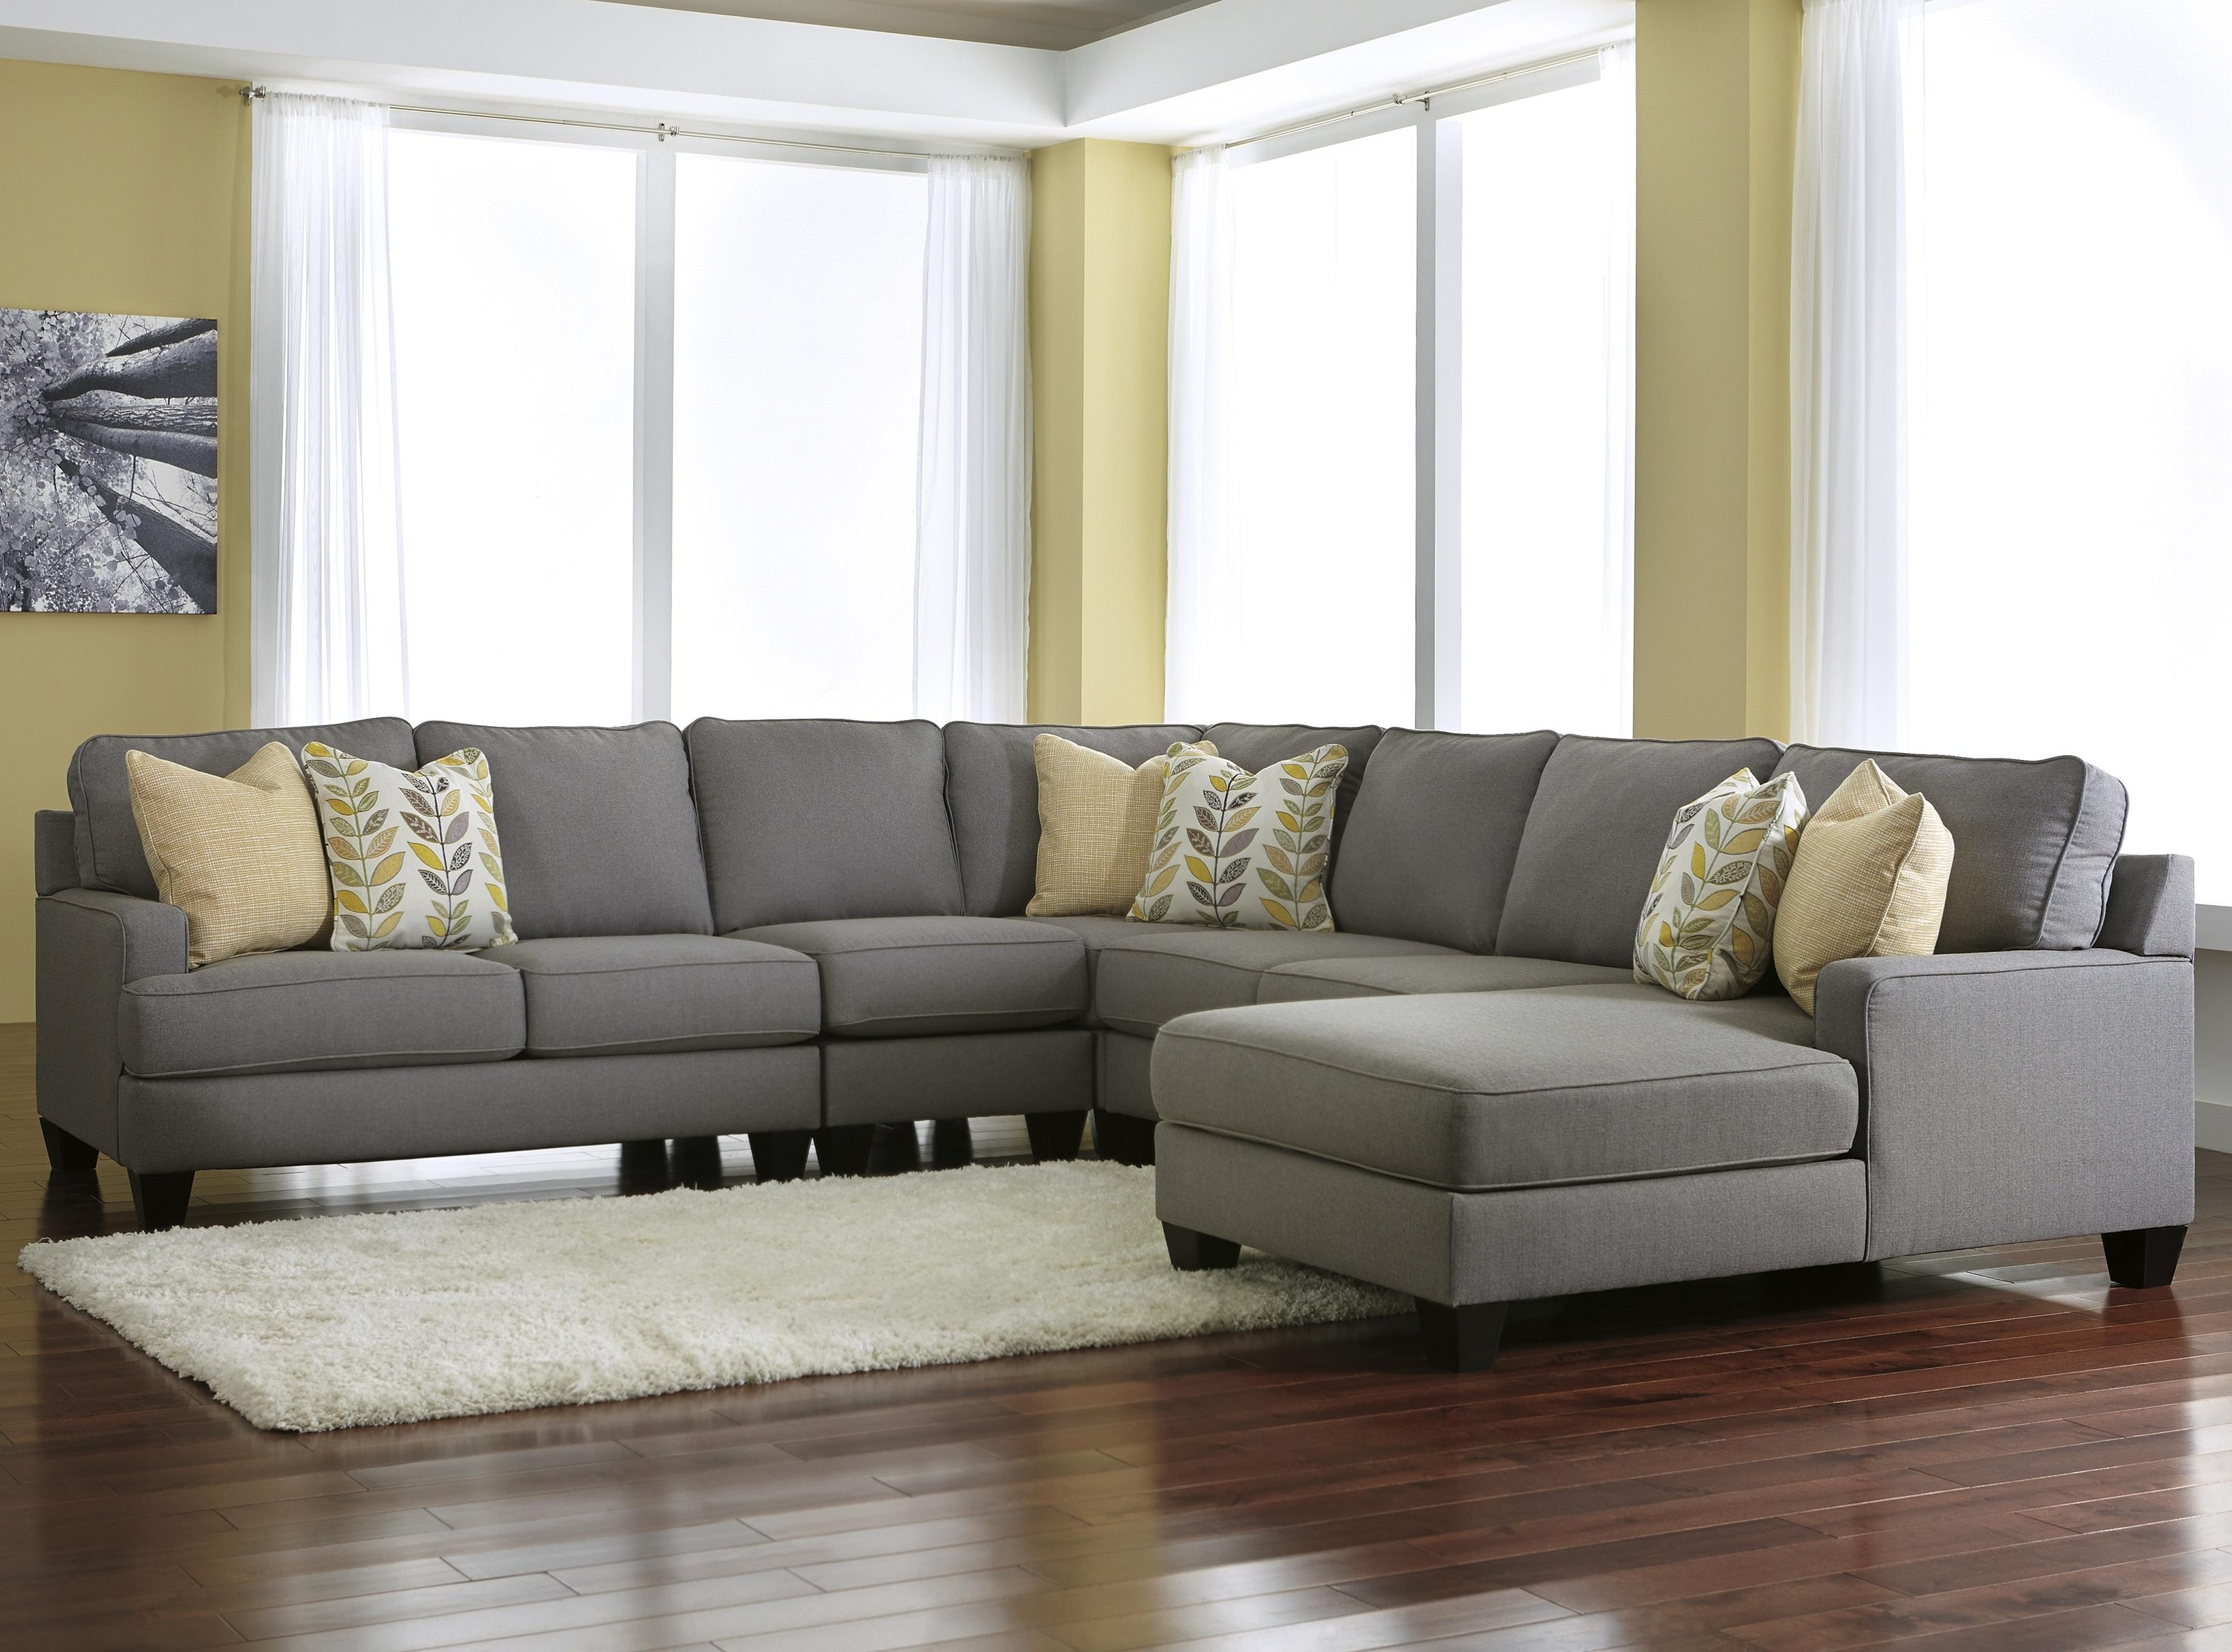 Signature Designashley Chamberly – Alloy Modern 5 Piece With Regard To Latest Kansas City Mo Sectional Sofas (View 4 of 15)